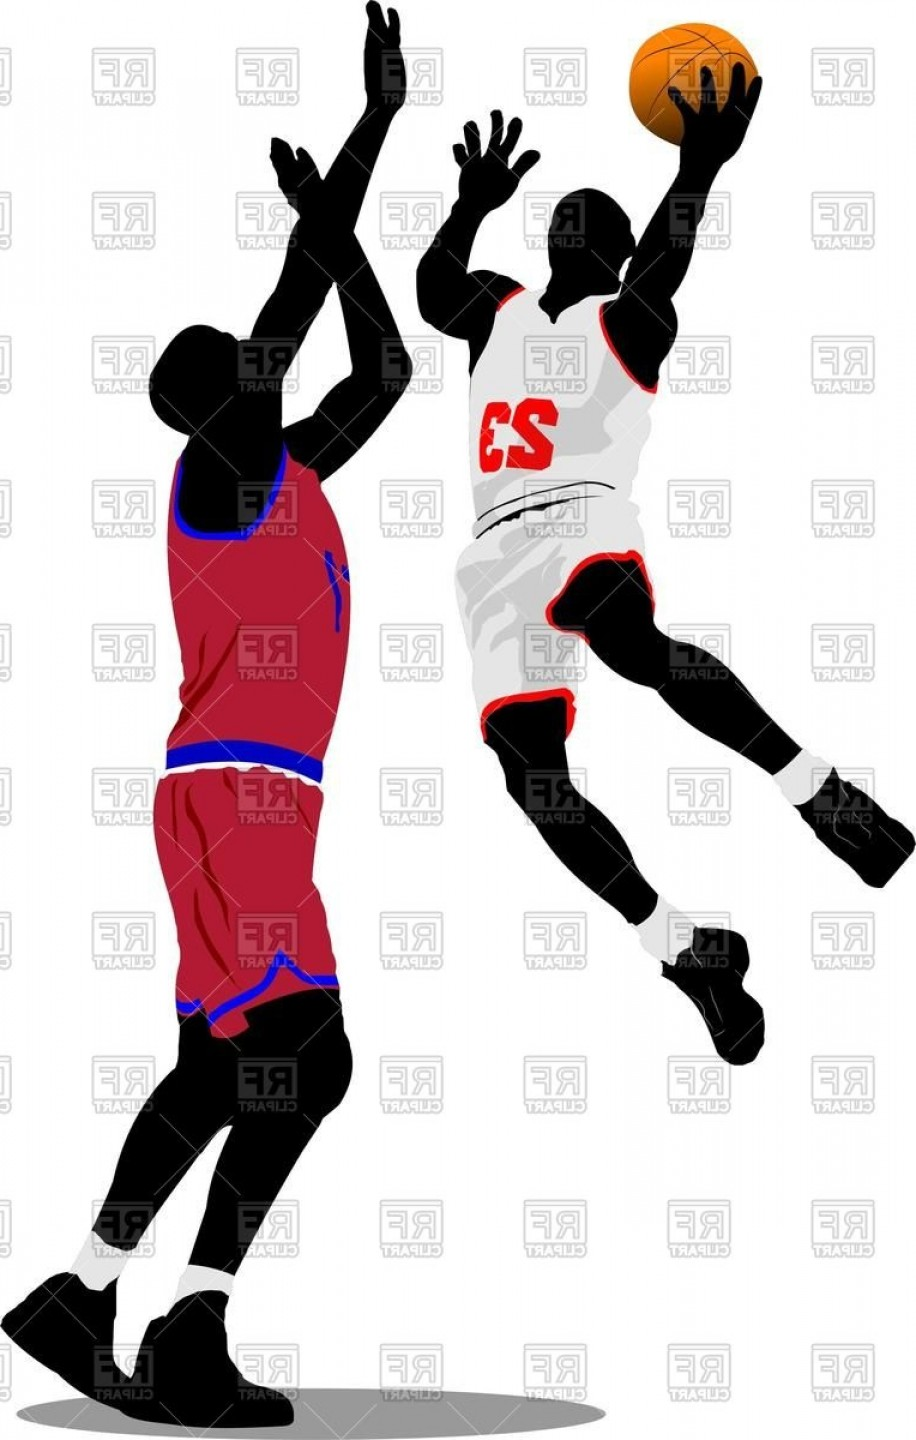 Motion Basketball Vector: Silhouette Of Basketball Players In Motion Vector Clipart